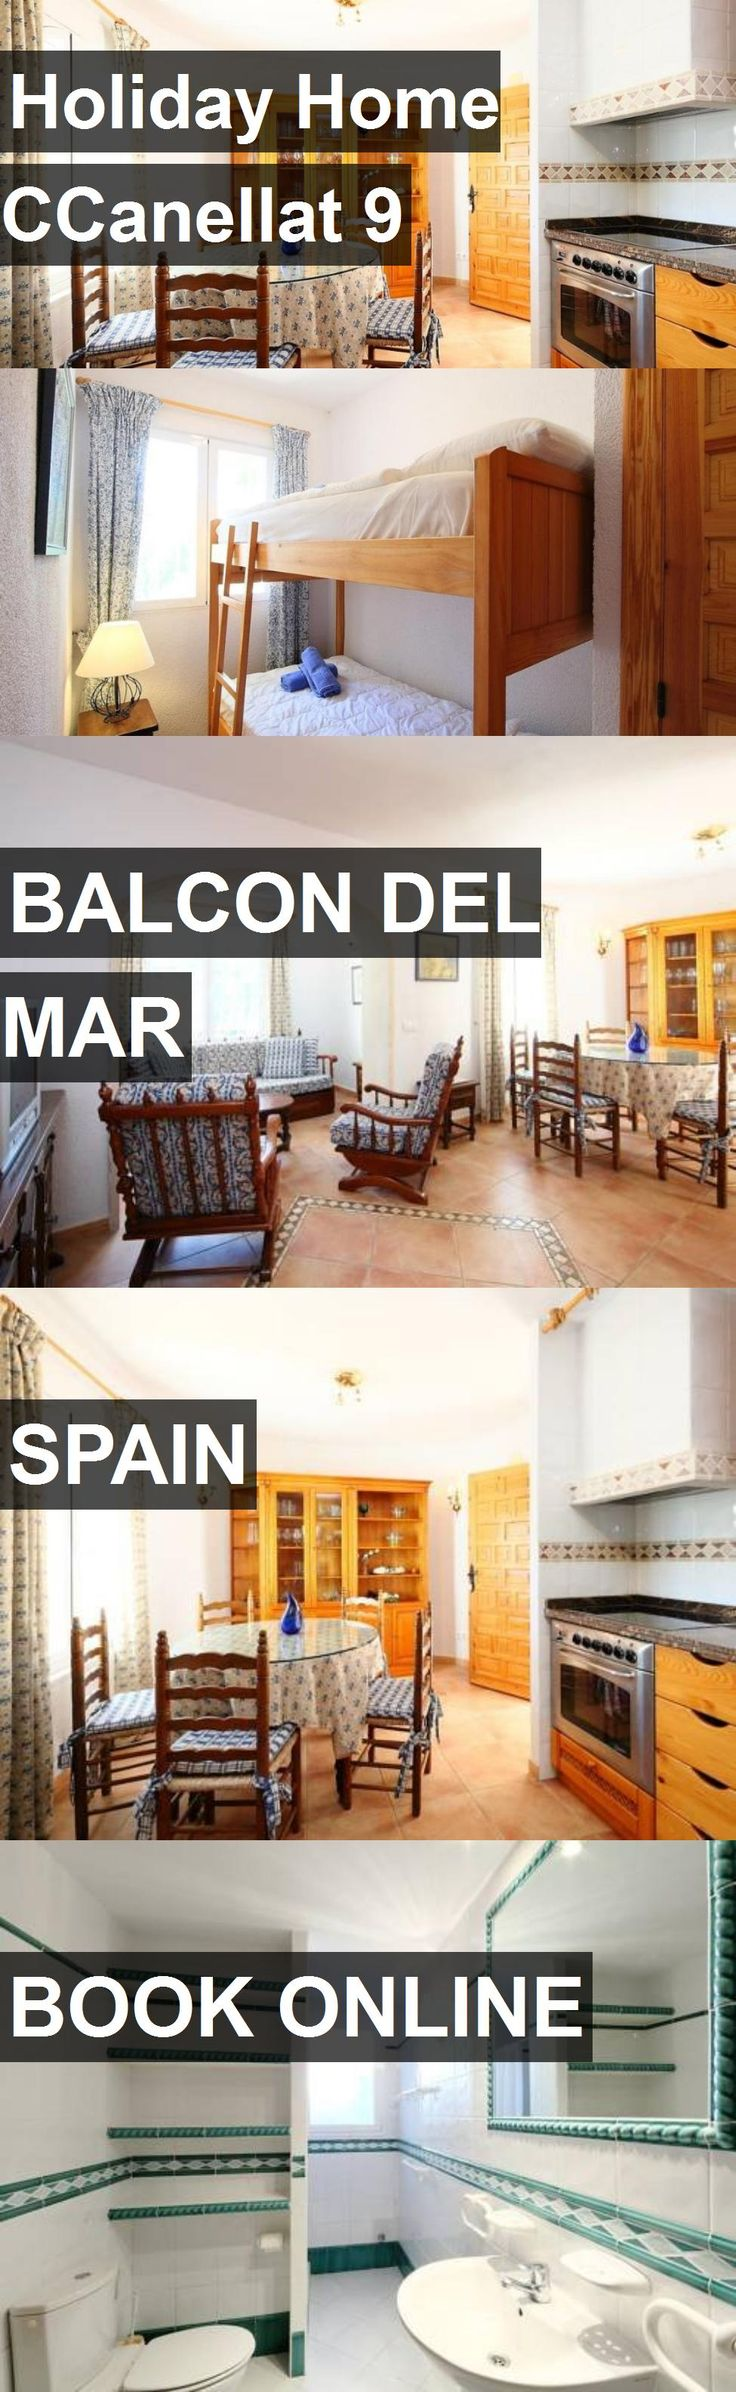 Hotel Holiday Home CCanellat 9 in Balcon del Mar, Spain. For more information, photos, reviews and best prices please follow the link. #Spain #BalcondelMar #travel #vacation #hotel